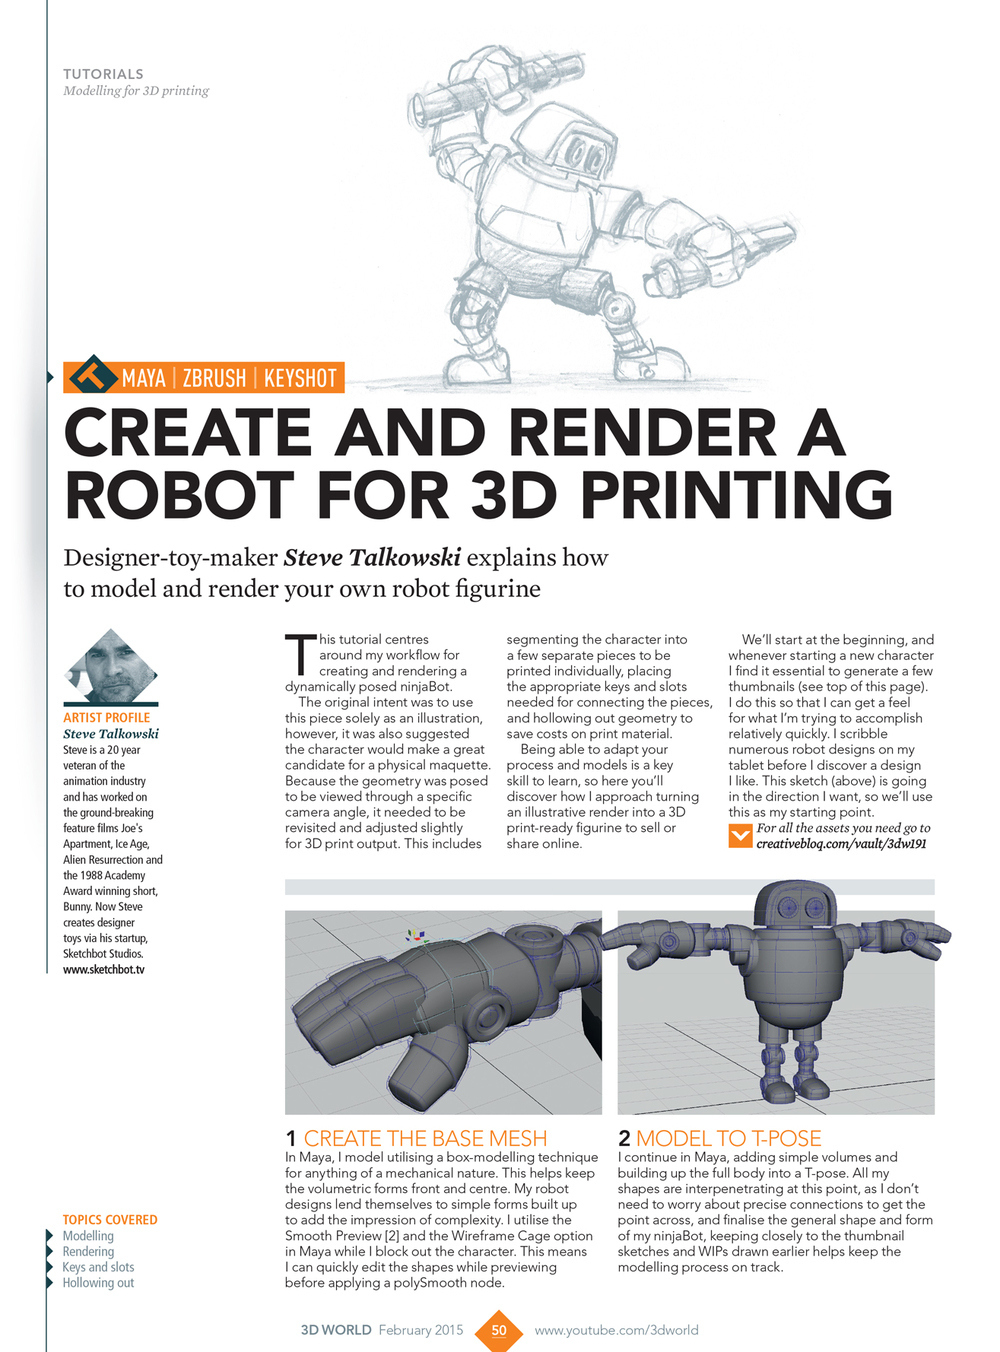 Create and Render a Robot for 3D Printing Tutorial